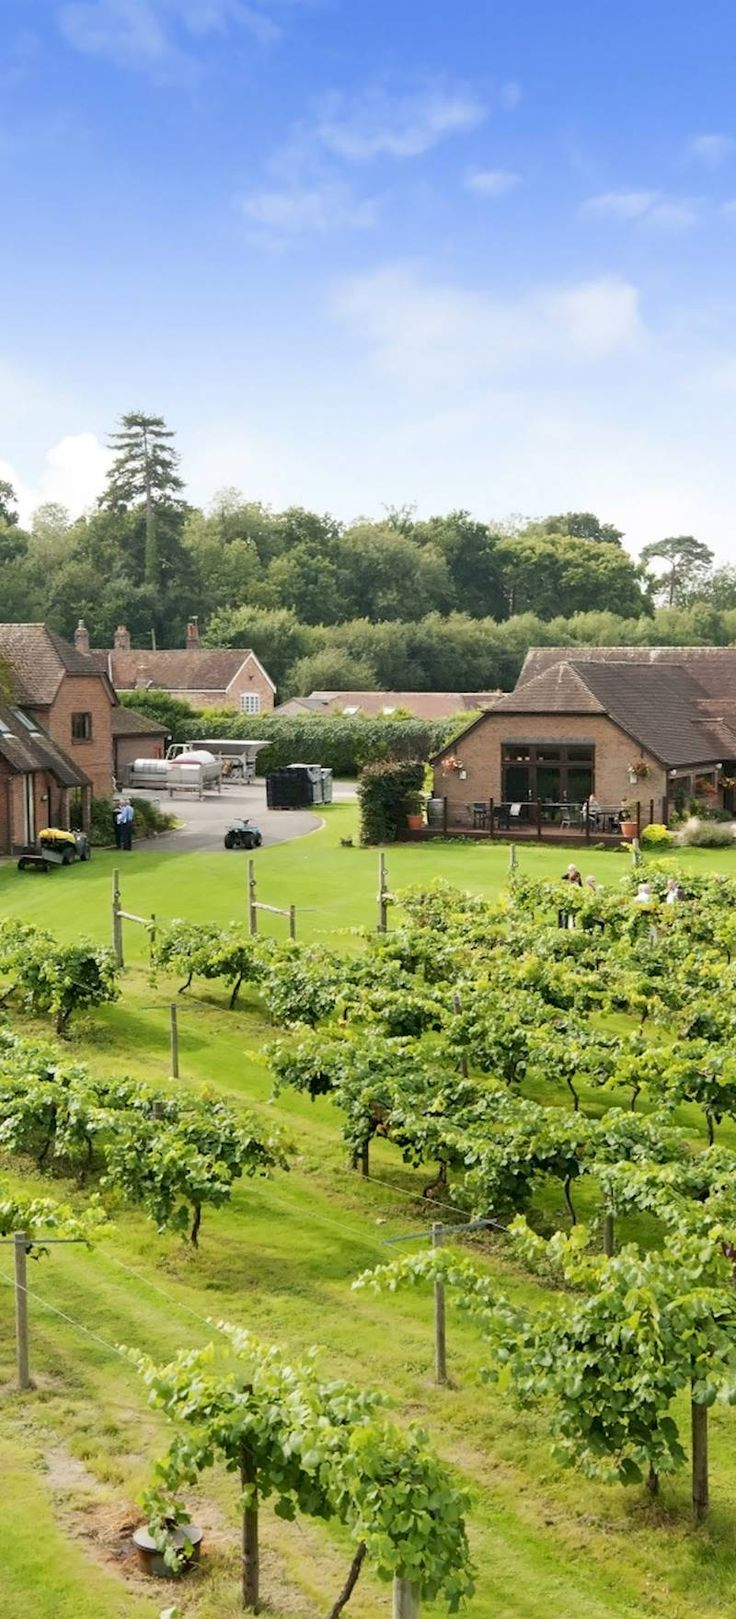 Vineyard Hampshire - Wine Tasting and Vineyard Restaurant | Three Choirs